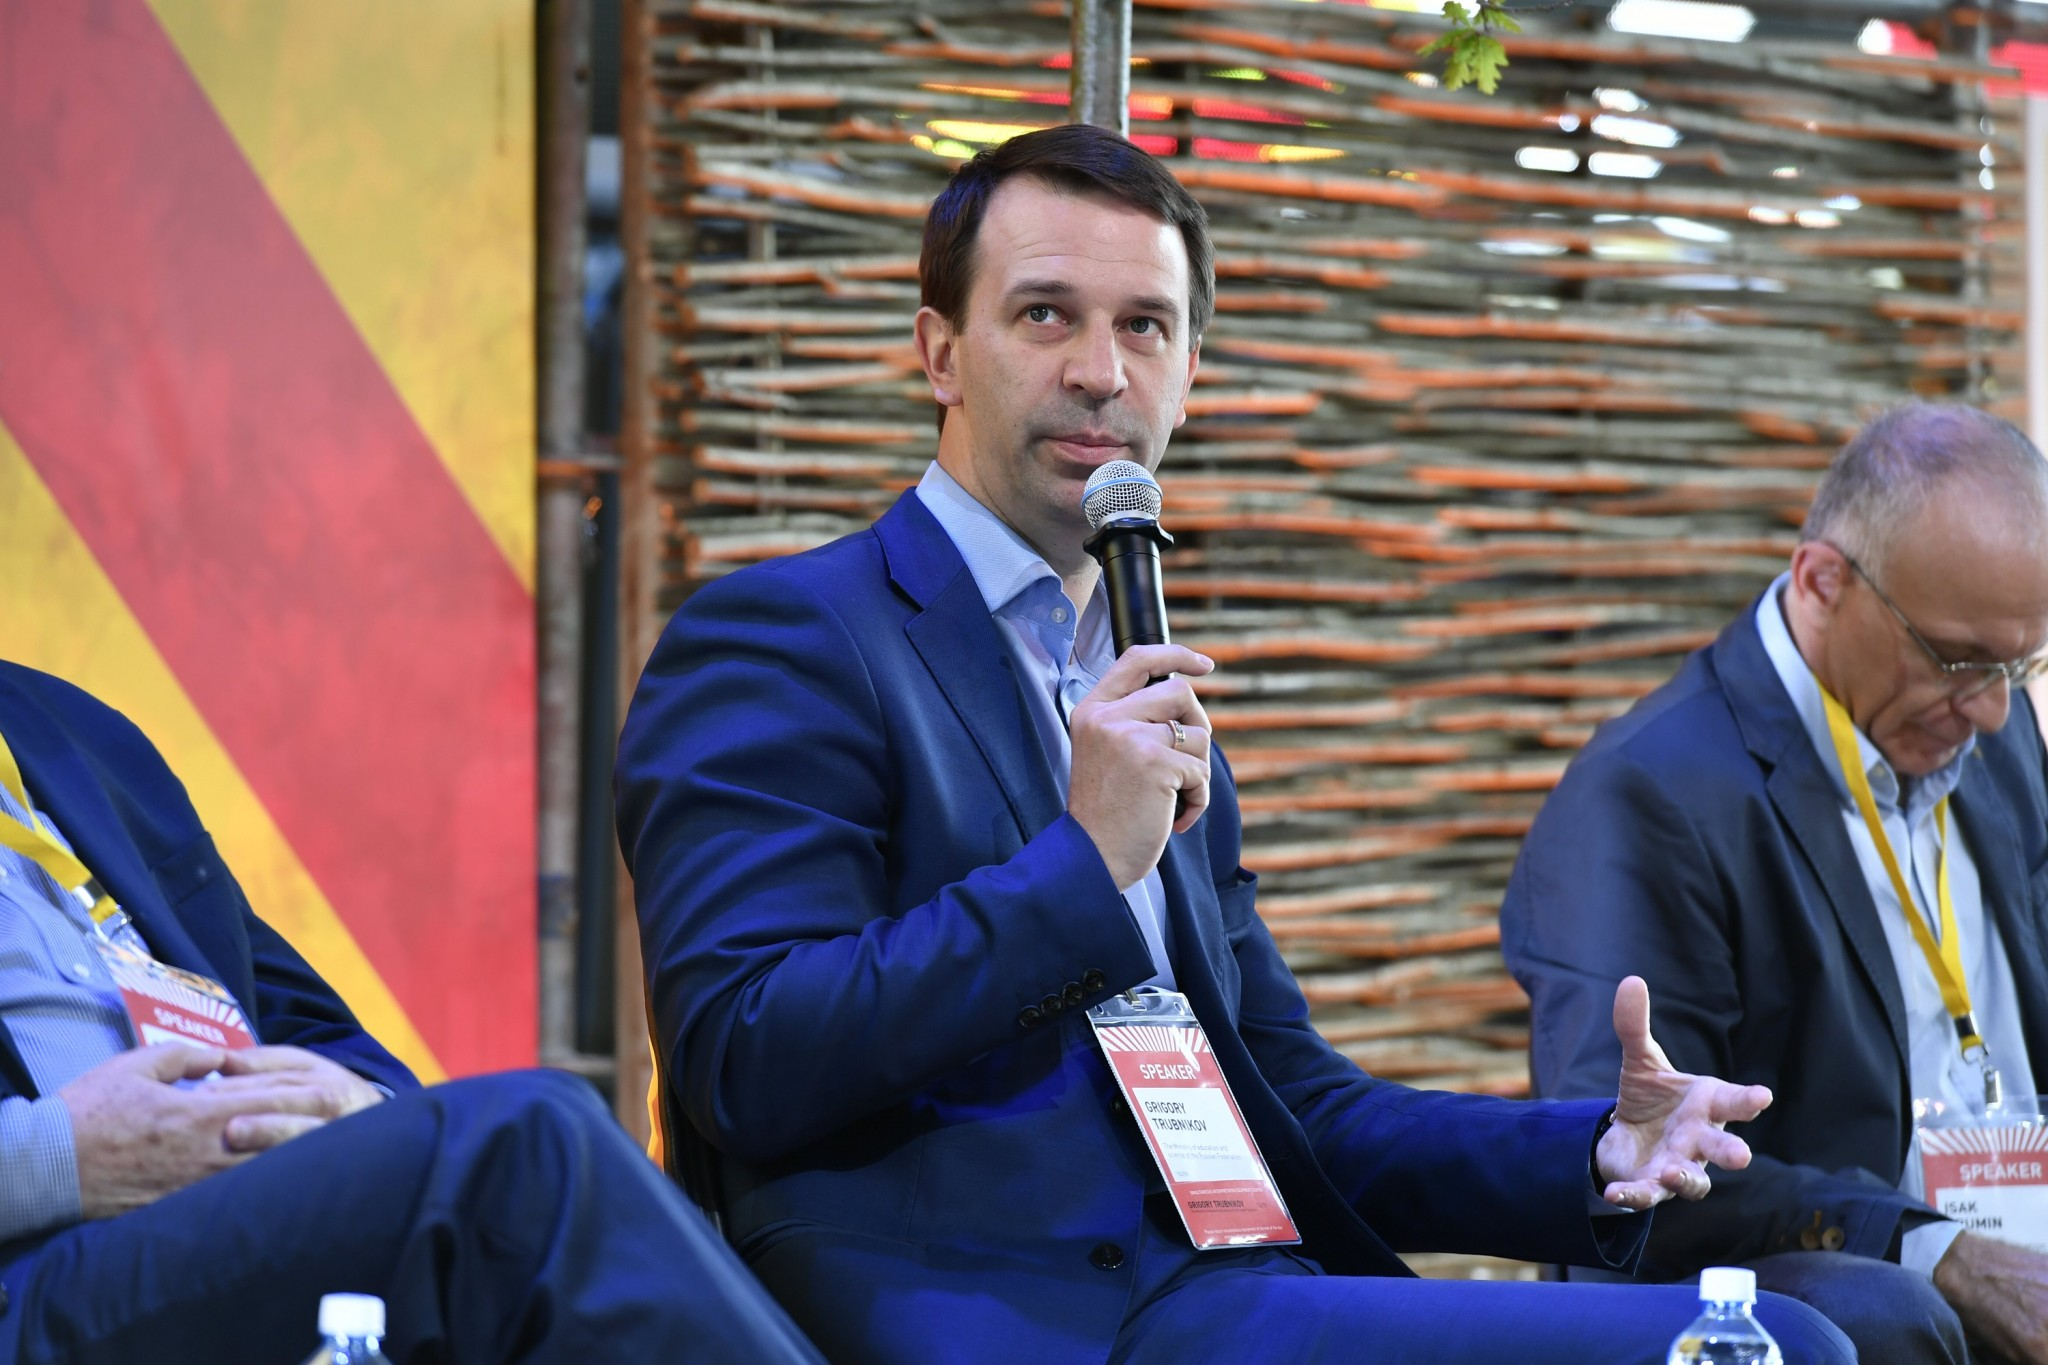 Russian Deputy Education Minister Grigory Trubnikov speaks to a crowd of education enthusiasts at the Startup Village.